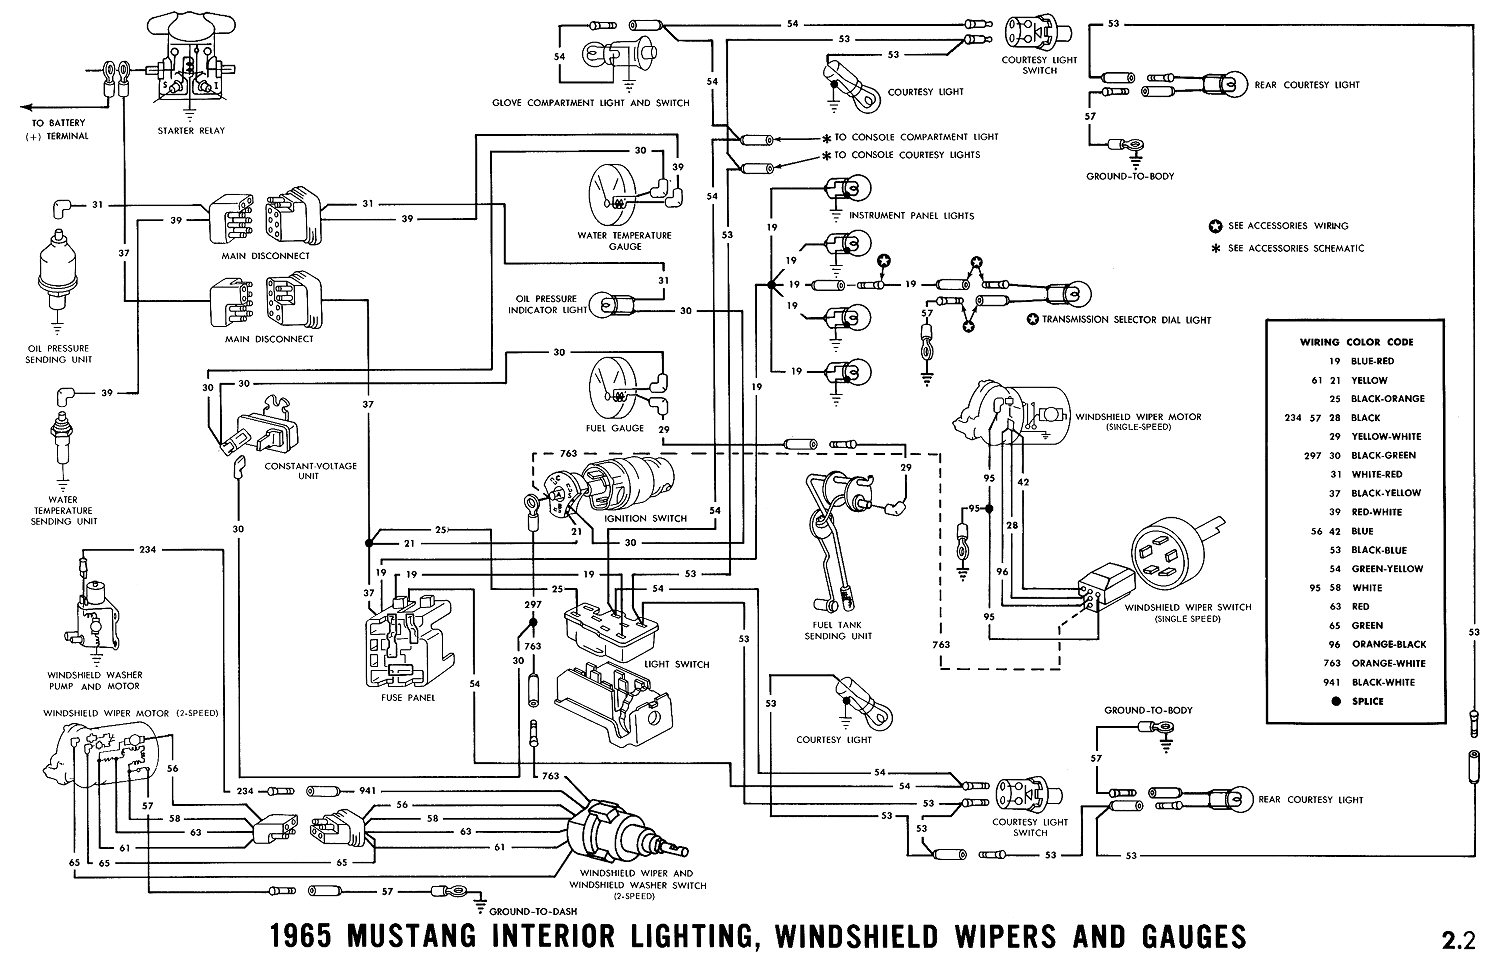 1966 Mustang Flasher Diagram Wiring Schematic Free Evinrude Johnson Omc New Instrument Tach Harness 174732 66 Turn Signal Origin Rh 20 4 Darklifezine De